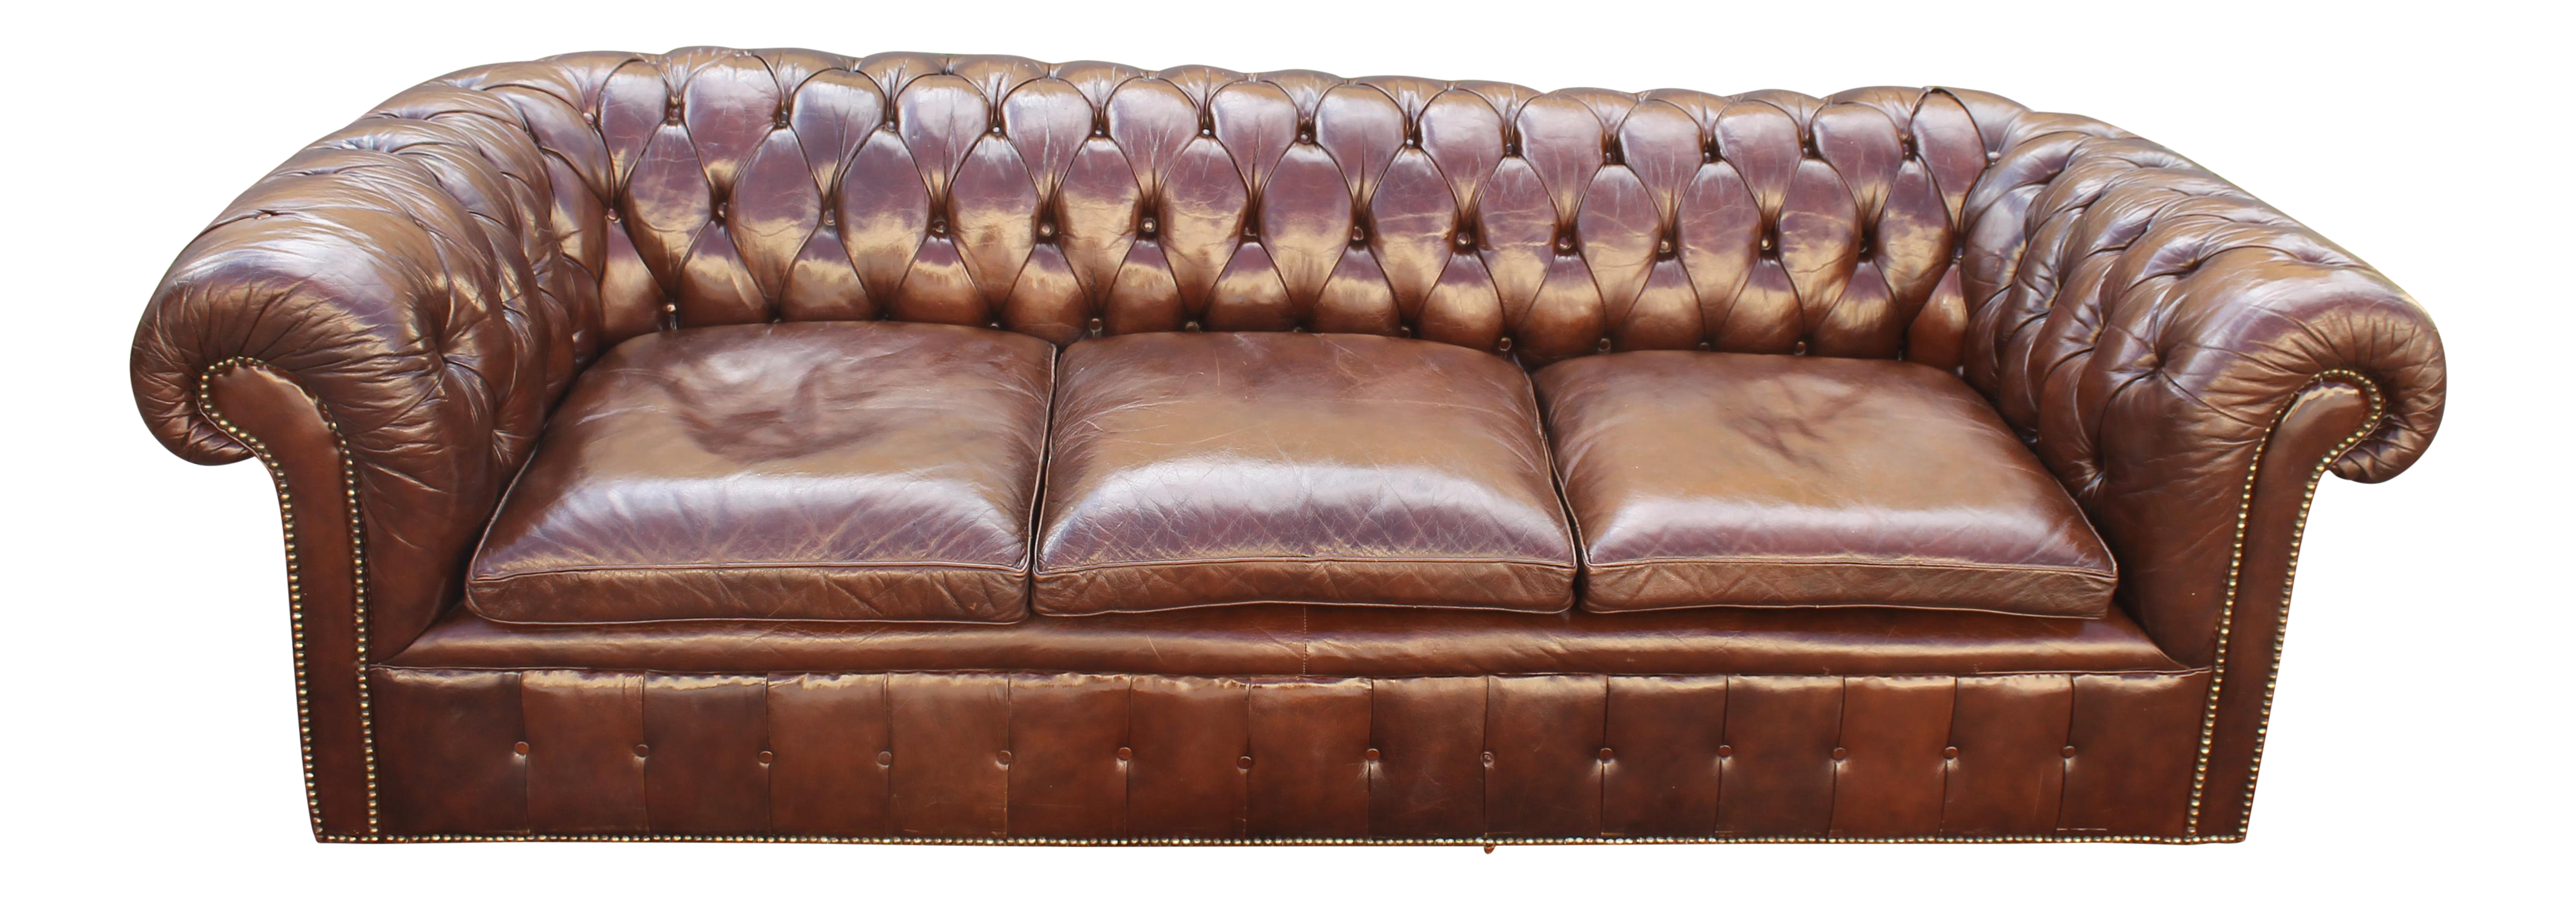 vintage chesterfield style grand leather sofa chairish rh chairish com franklin grand leather sofa burlington grand leather sofa